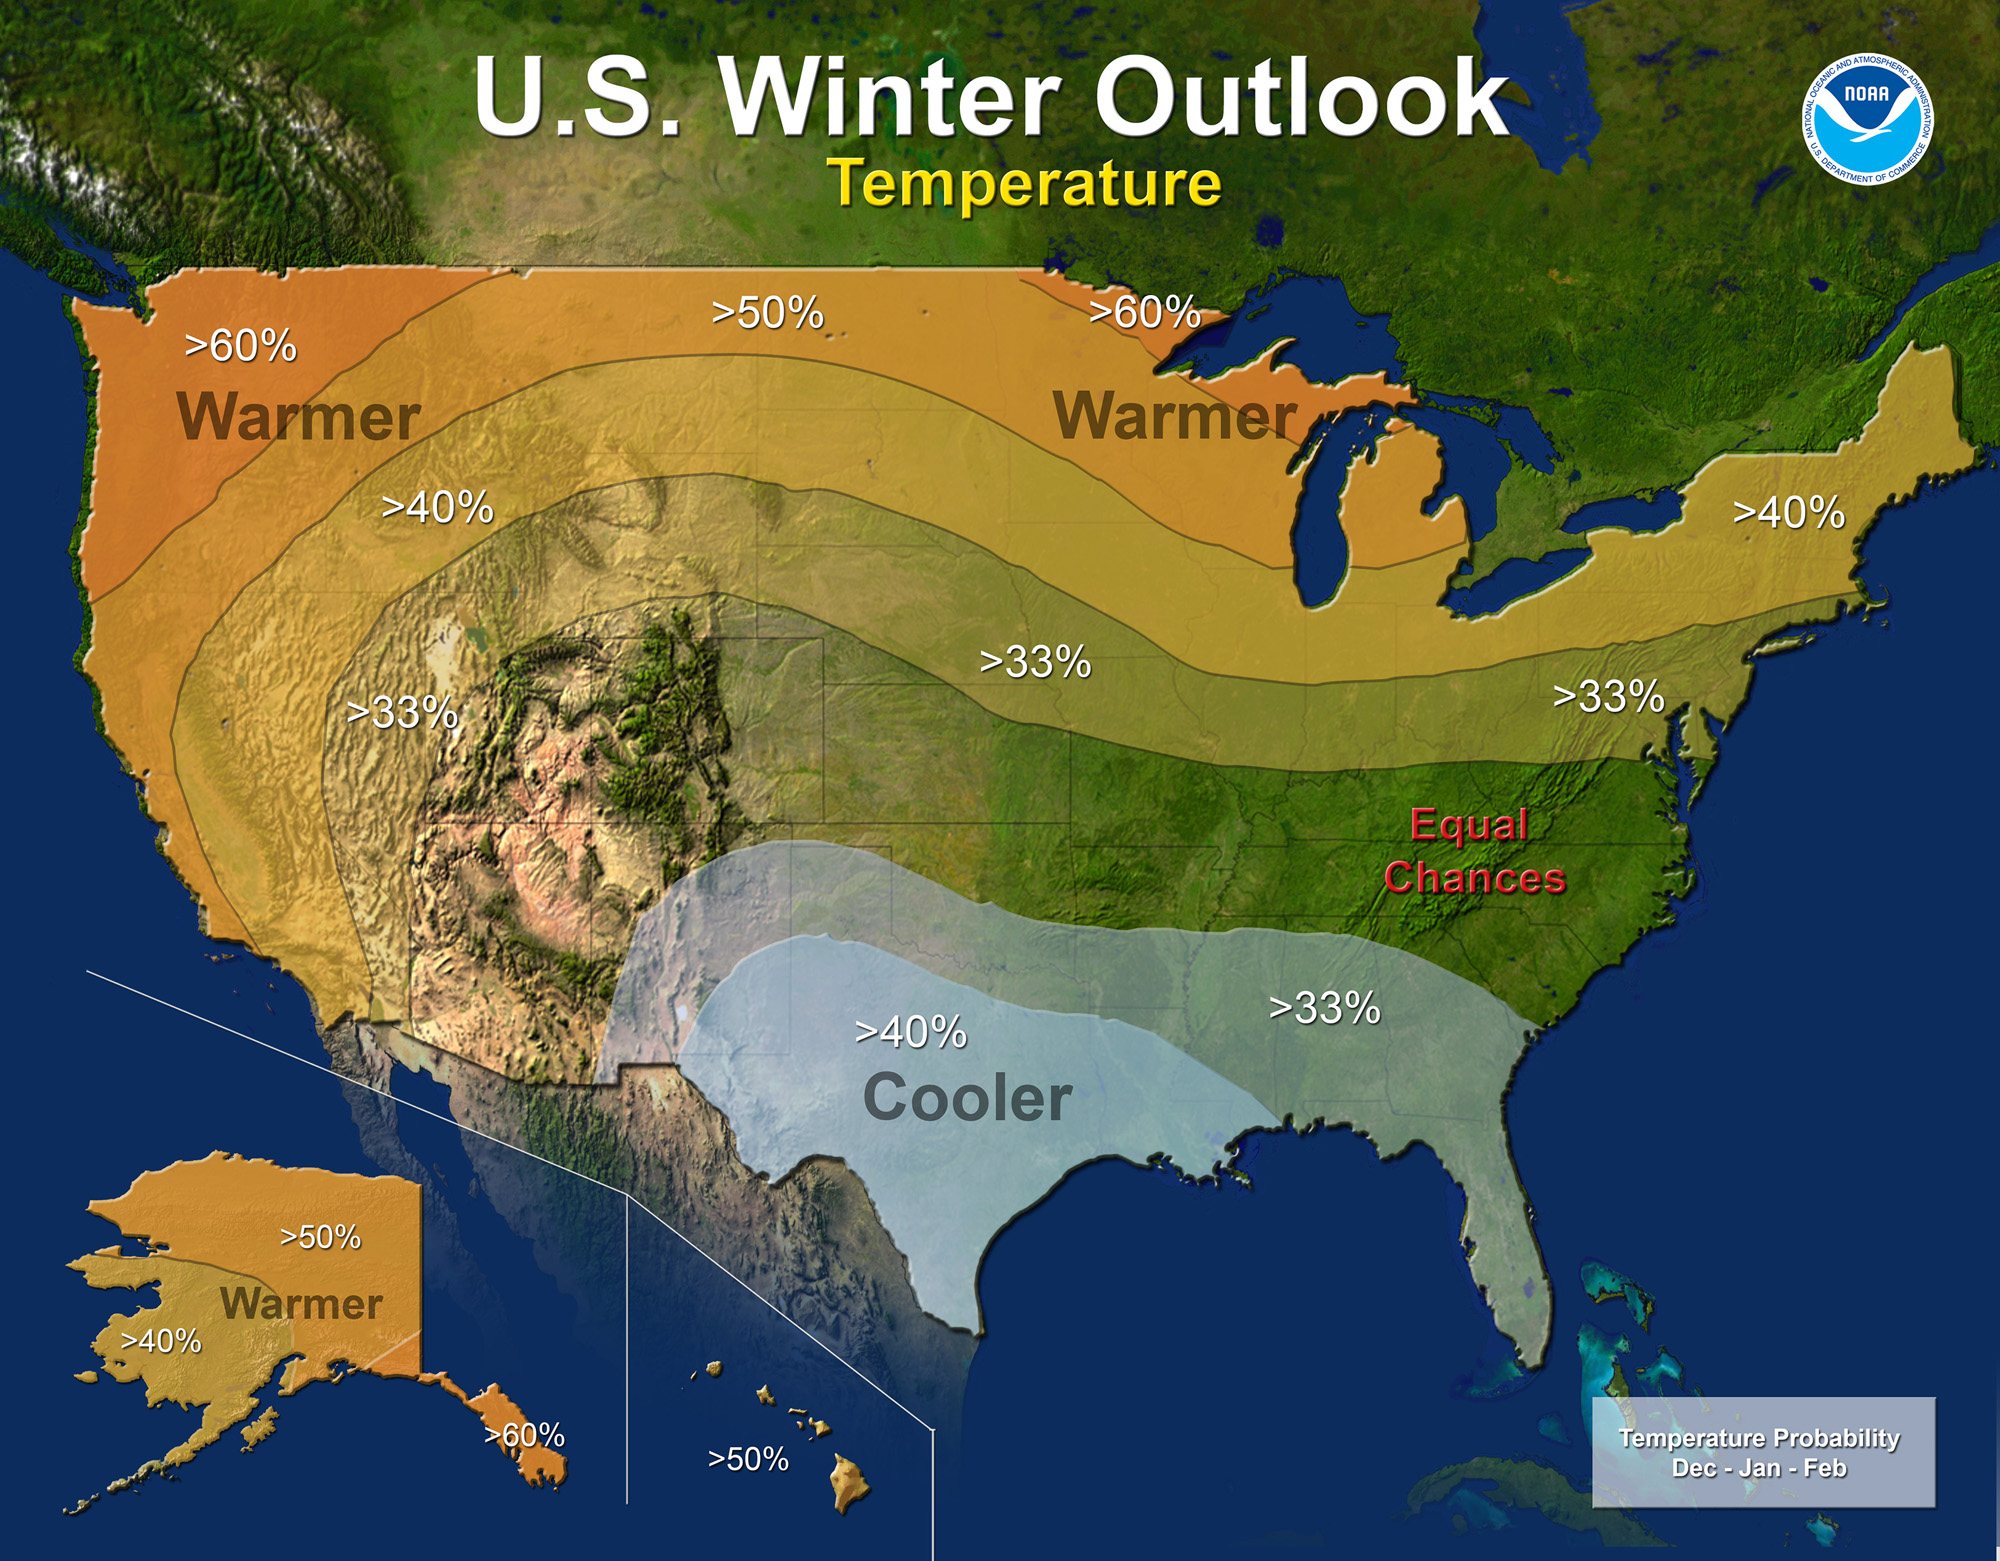 U.S.A. Winter Outlook for 2015-2016 by NOAA.